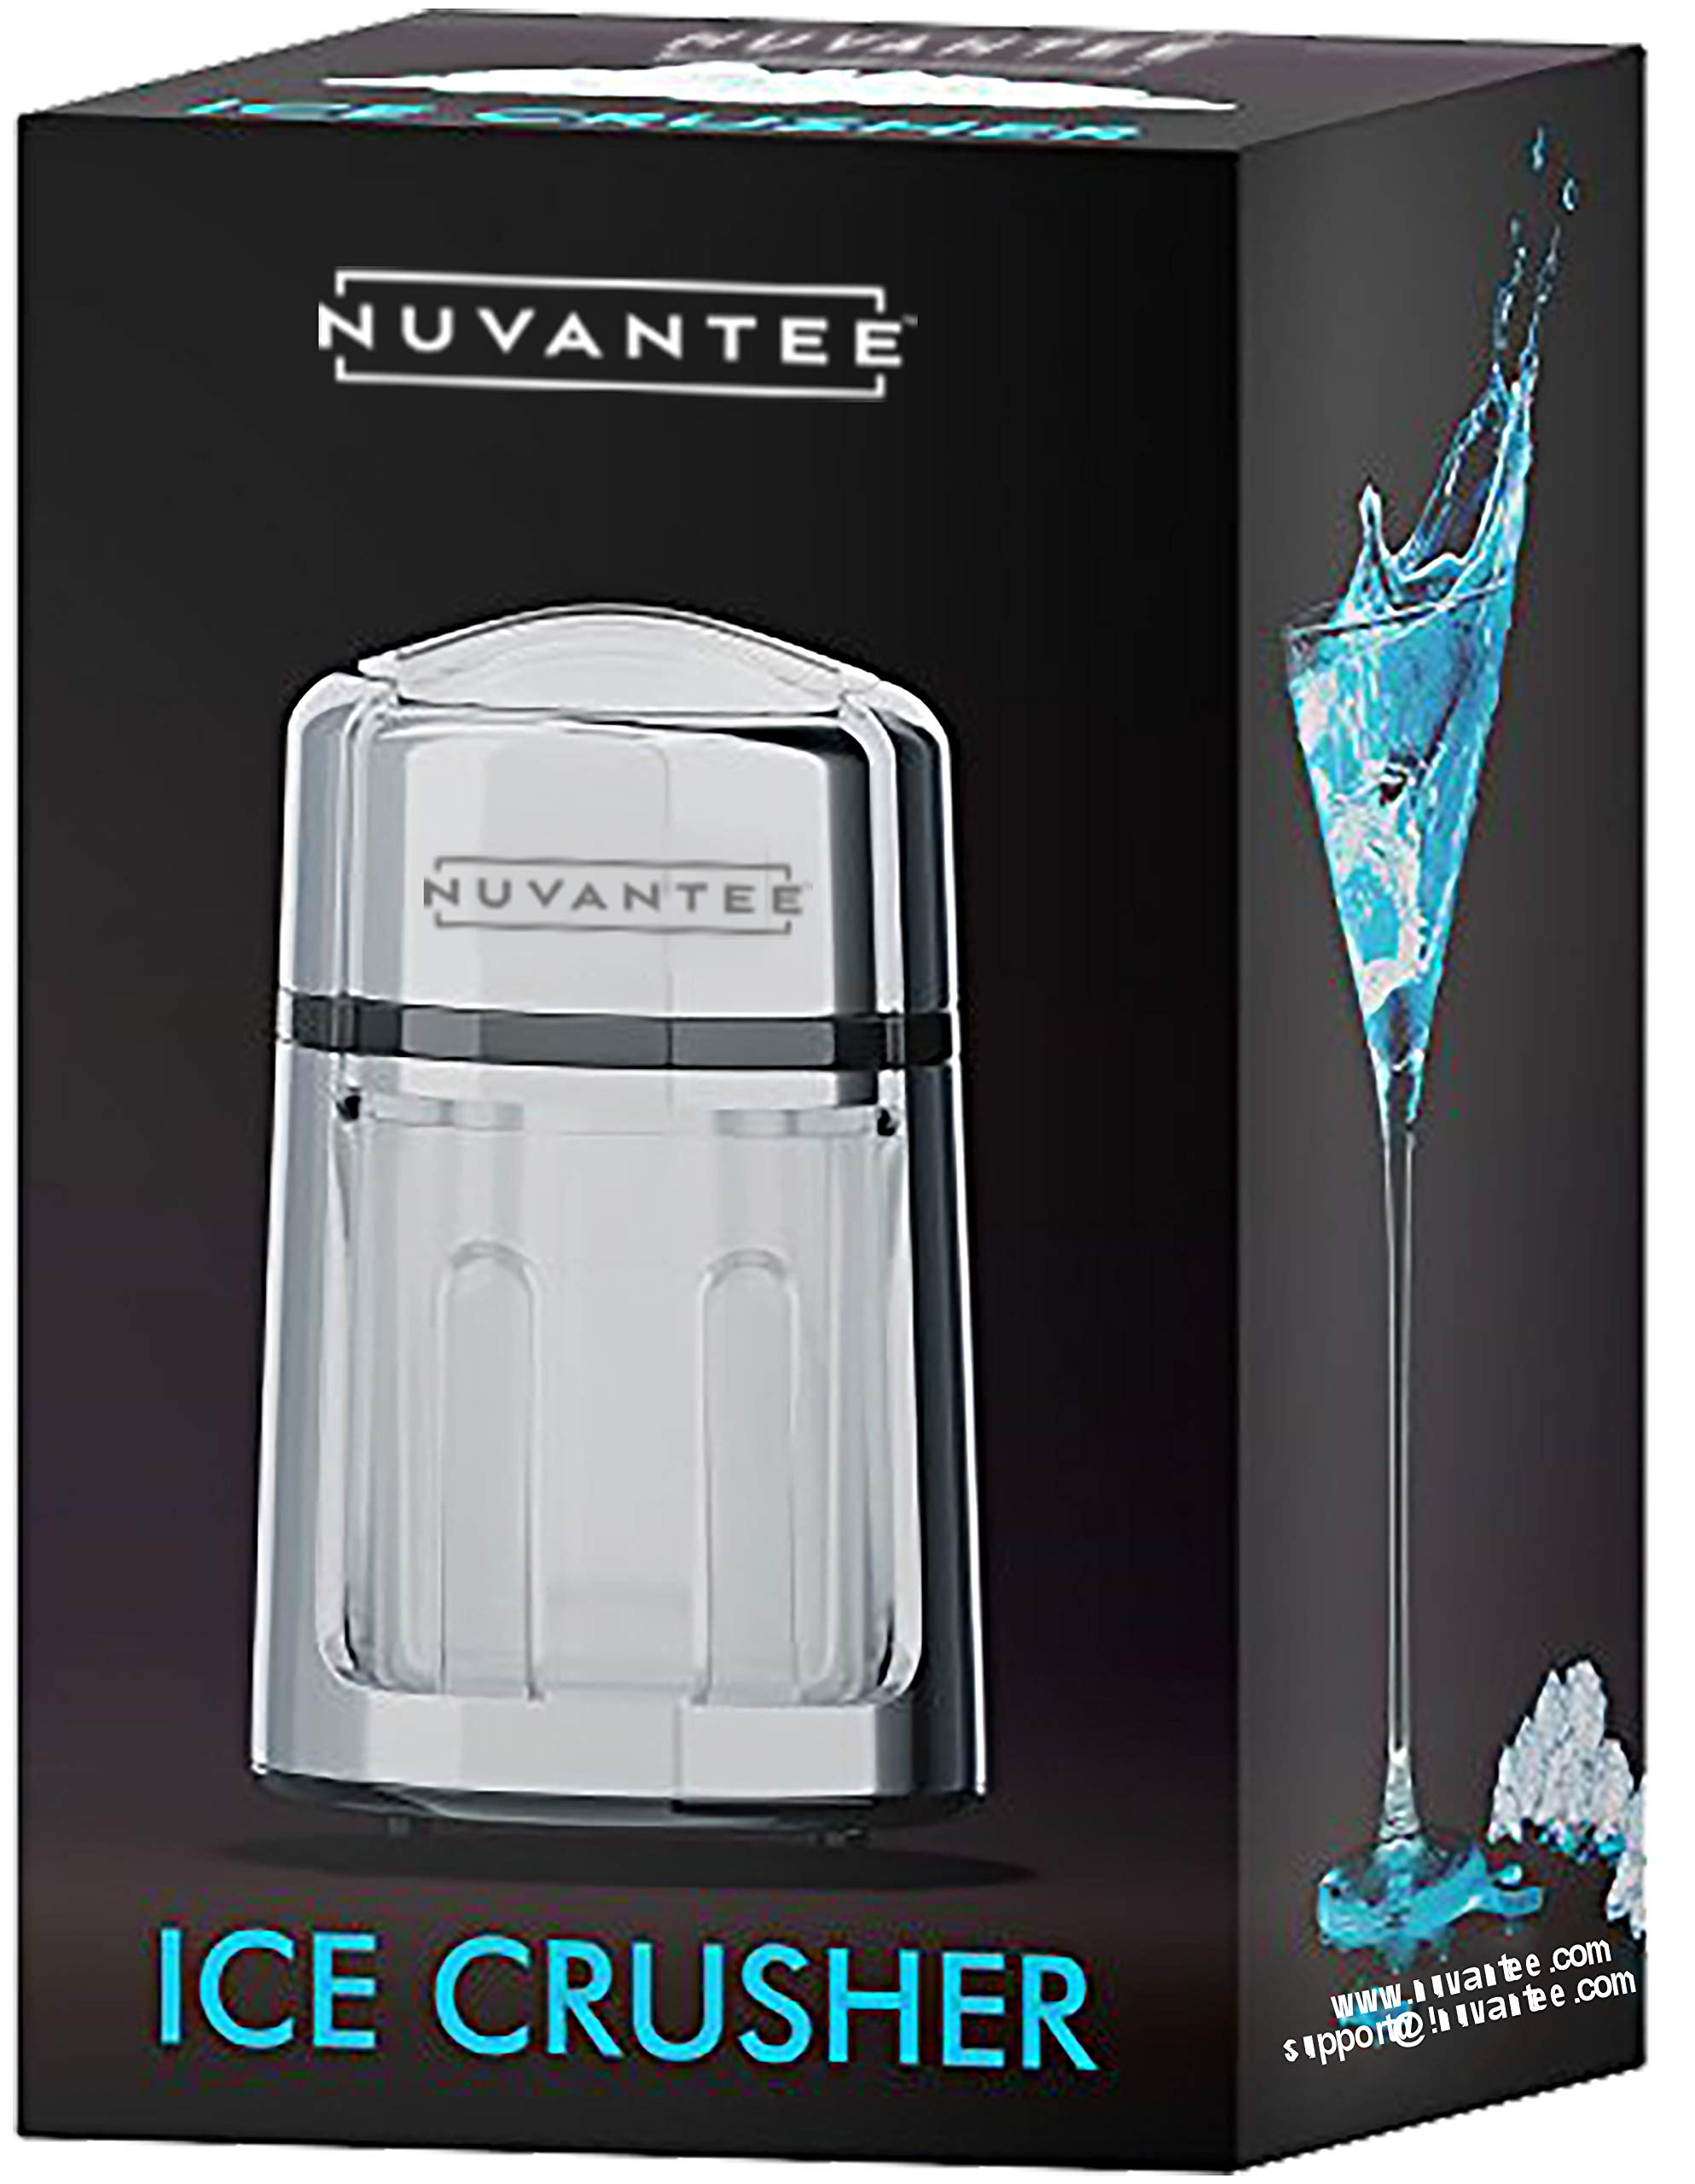 Nuvantee Manual Ice Crusher - Rust-Proof Zinc Alloy Construction - Carbon Steel 430 Blade - Hand Crank Ice Grinder - Fine or Coarse Pieces - Non-Slip Base - Chrome Plated by Nuvantee